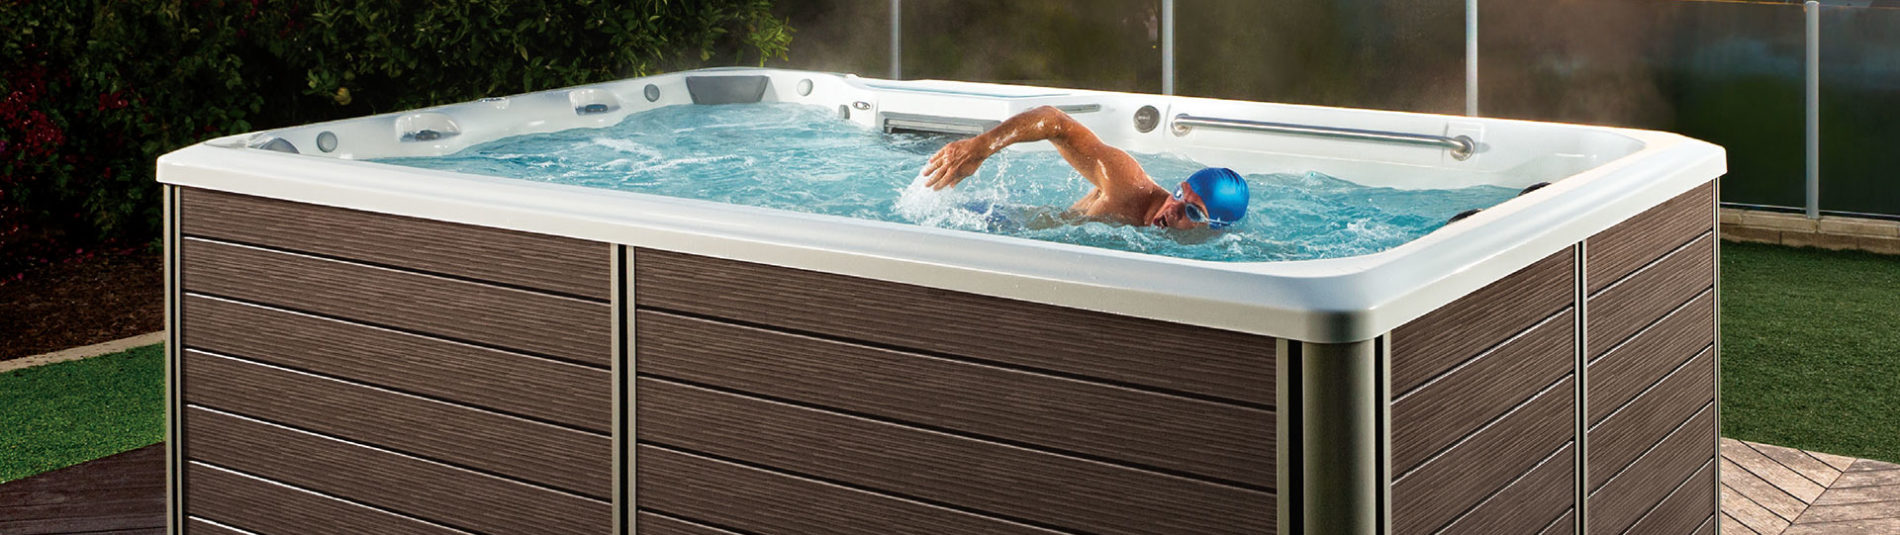 Swimcross Exercise Systems Jetted Swim Spa Resistance Pools Endless Pools Fitness Systems